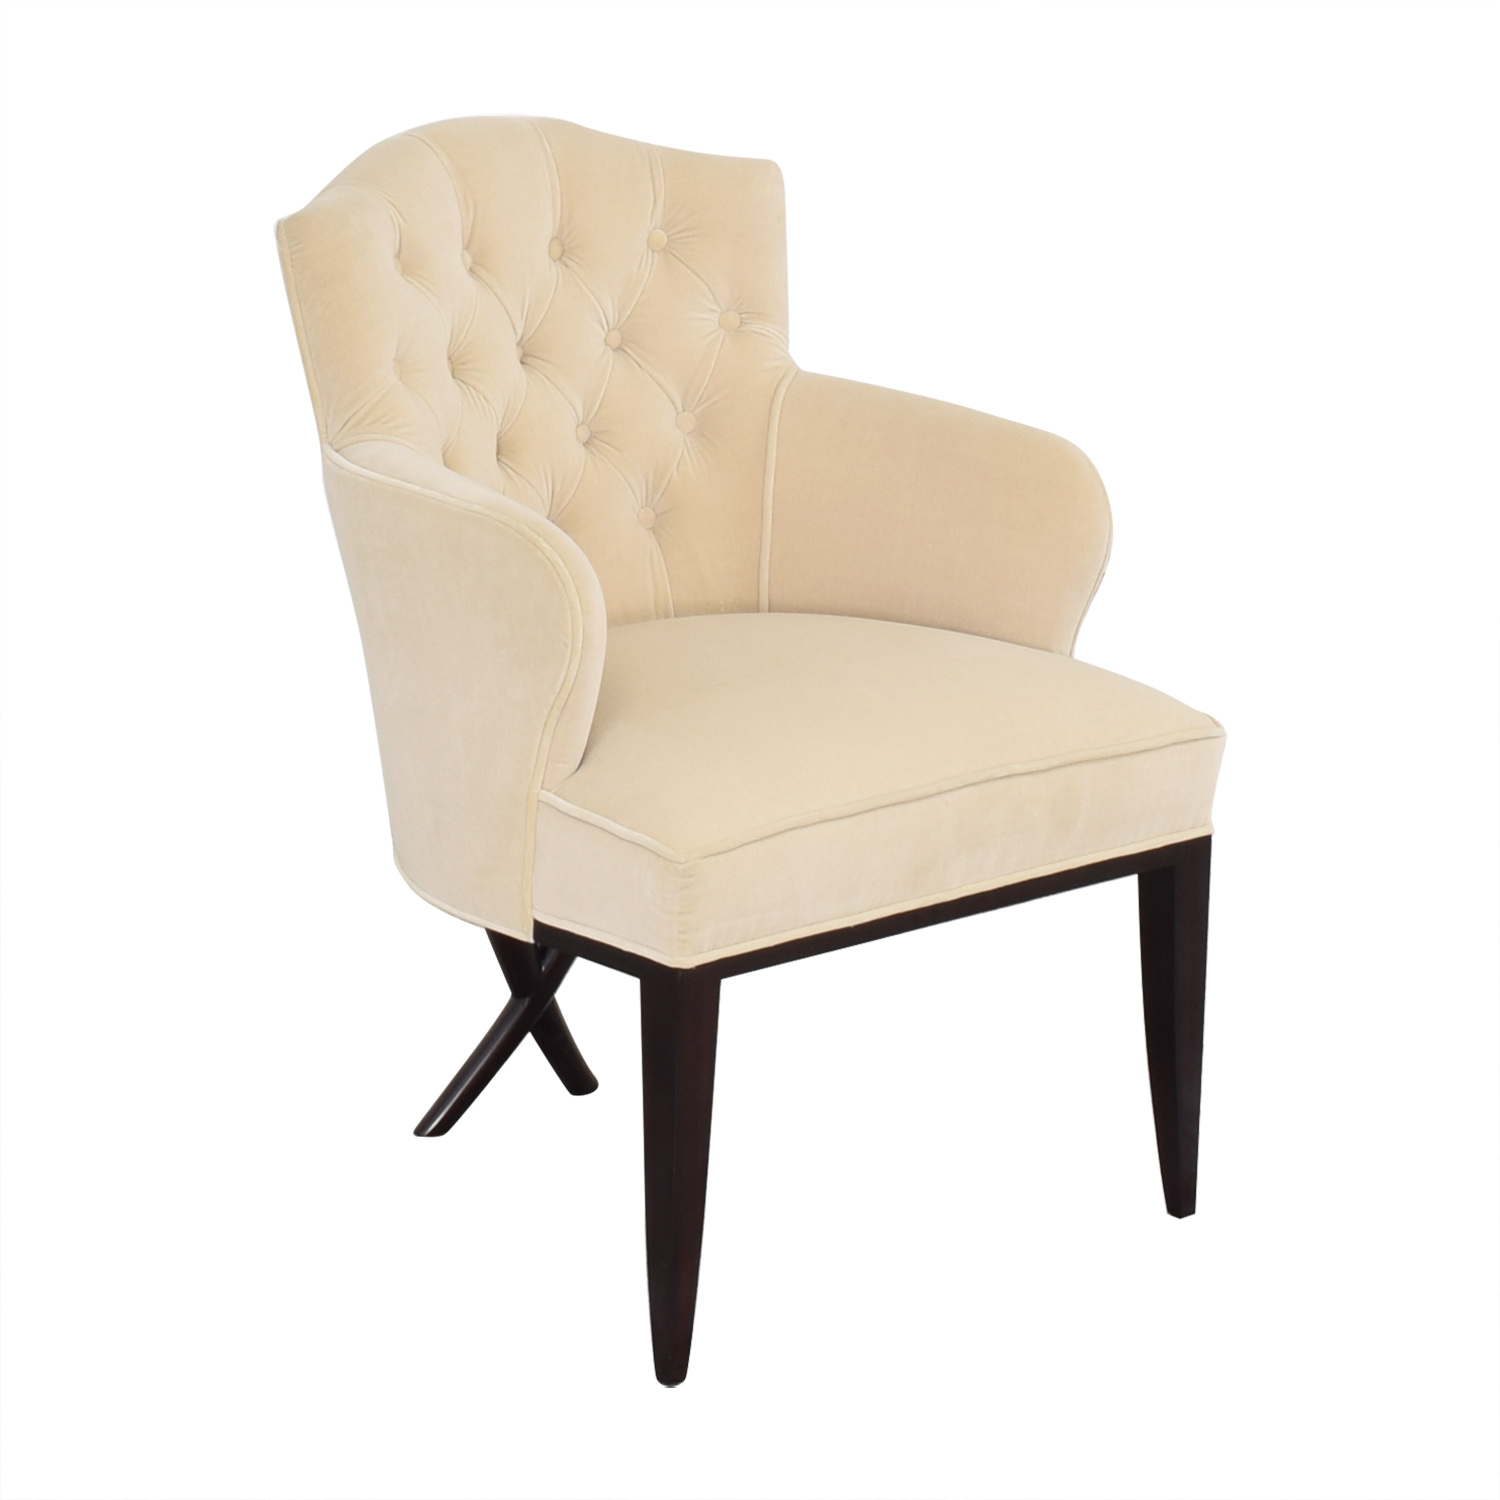 Christopher Guy Christopher Guy Monaco Chair nj